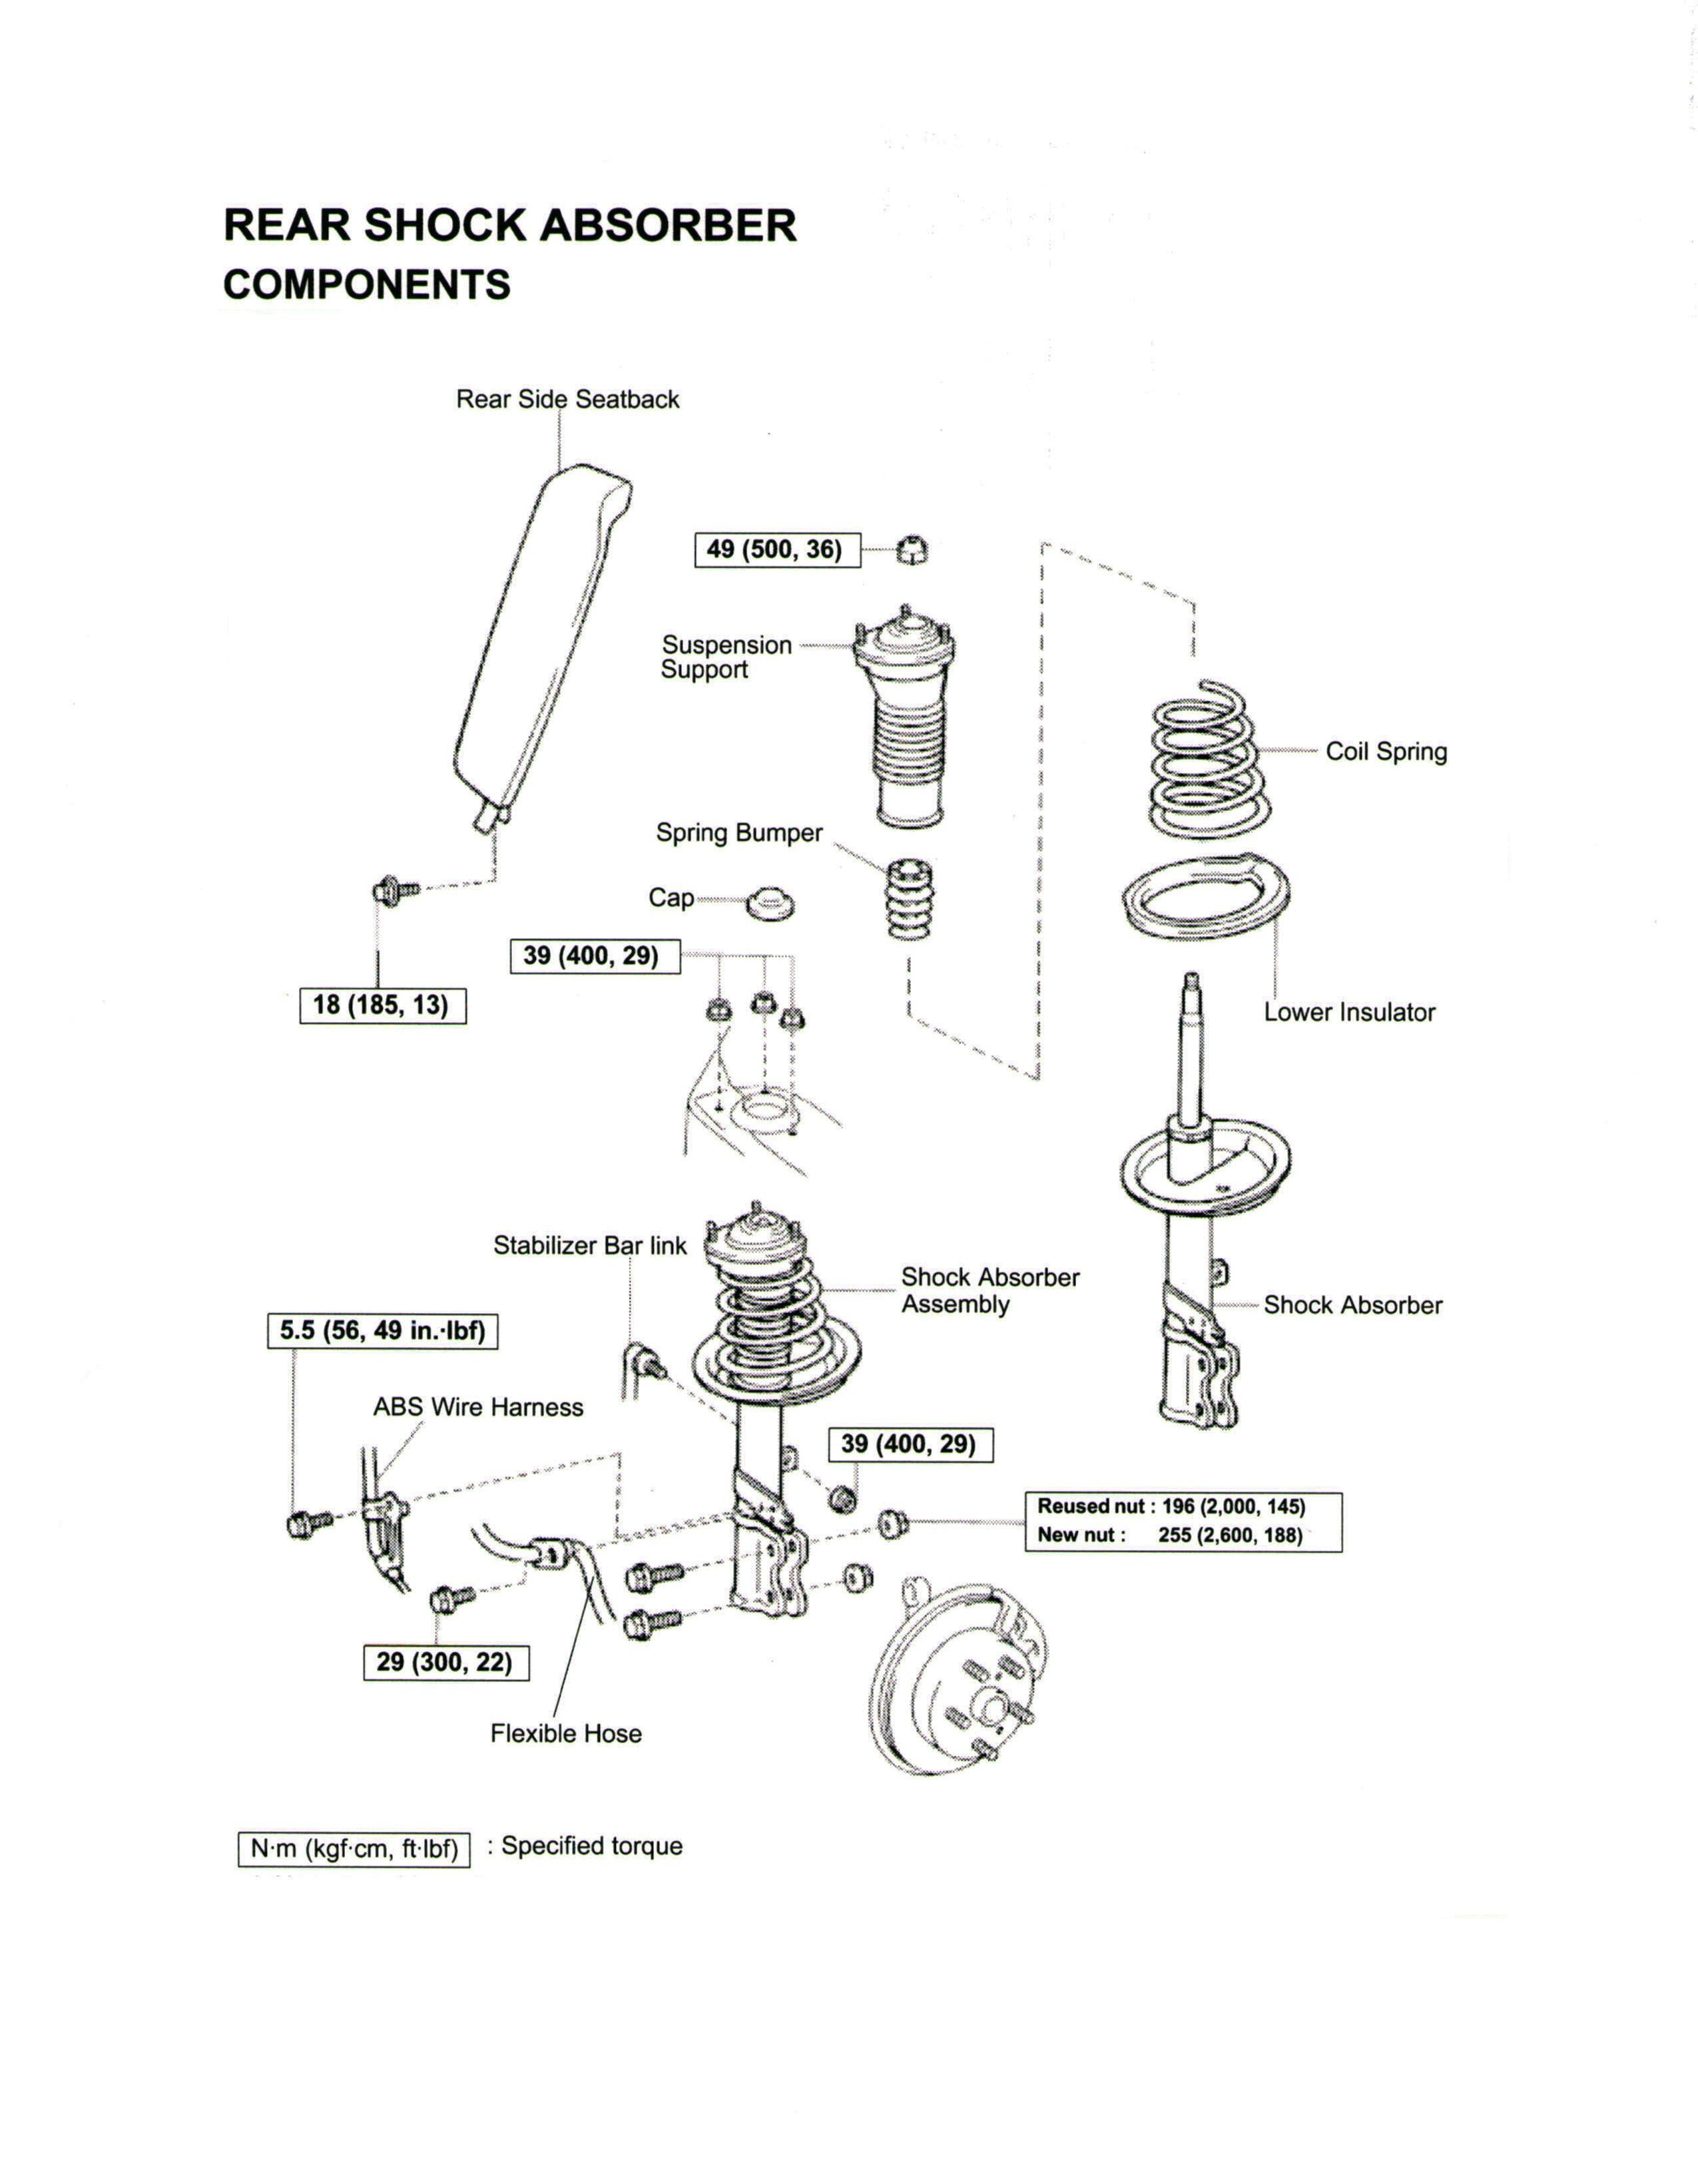 1994 toyota Camry Engine Diagram 1997 toyota Camry Engine Diagram Replacing the Rear Strut and or Of 1994 toyota Camry Engine Diagram